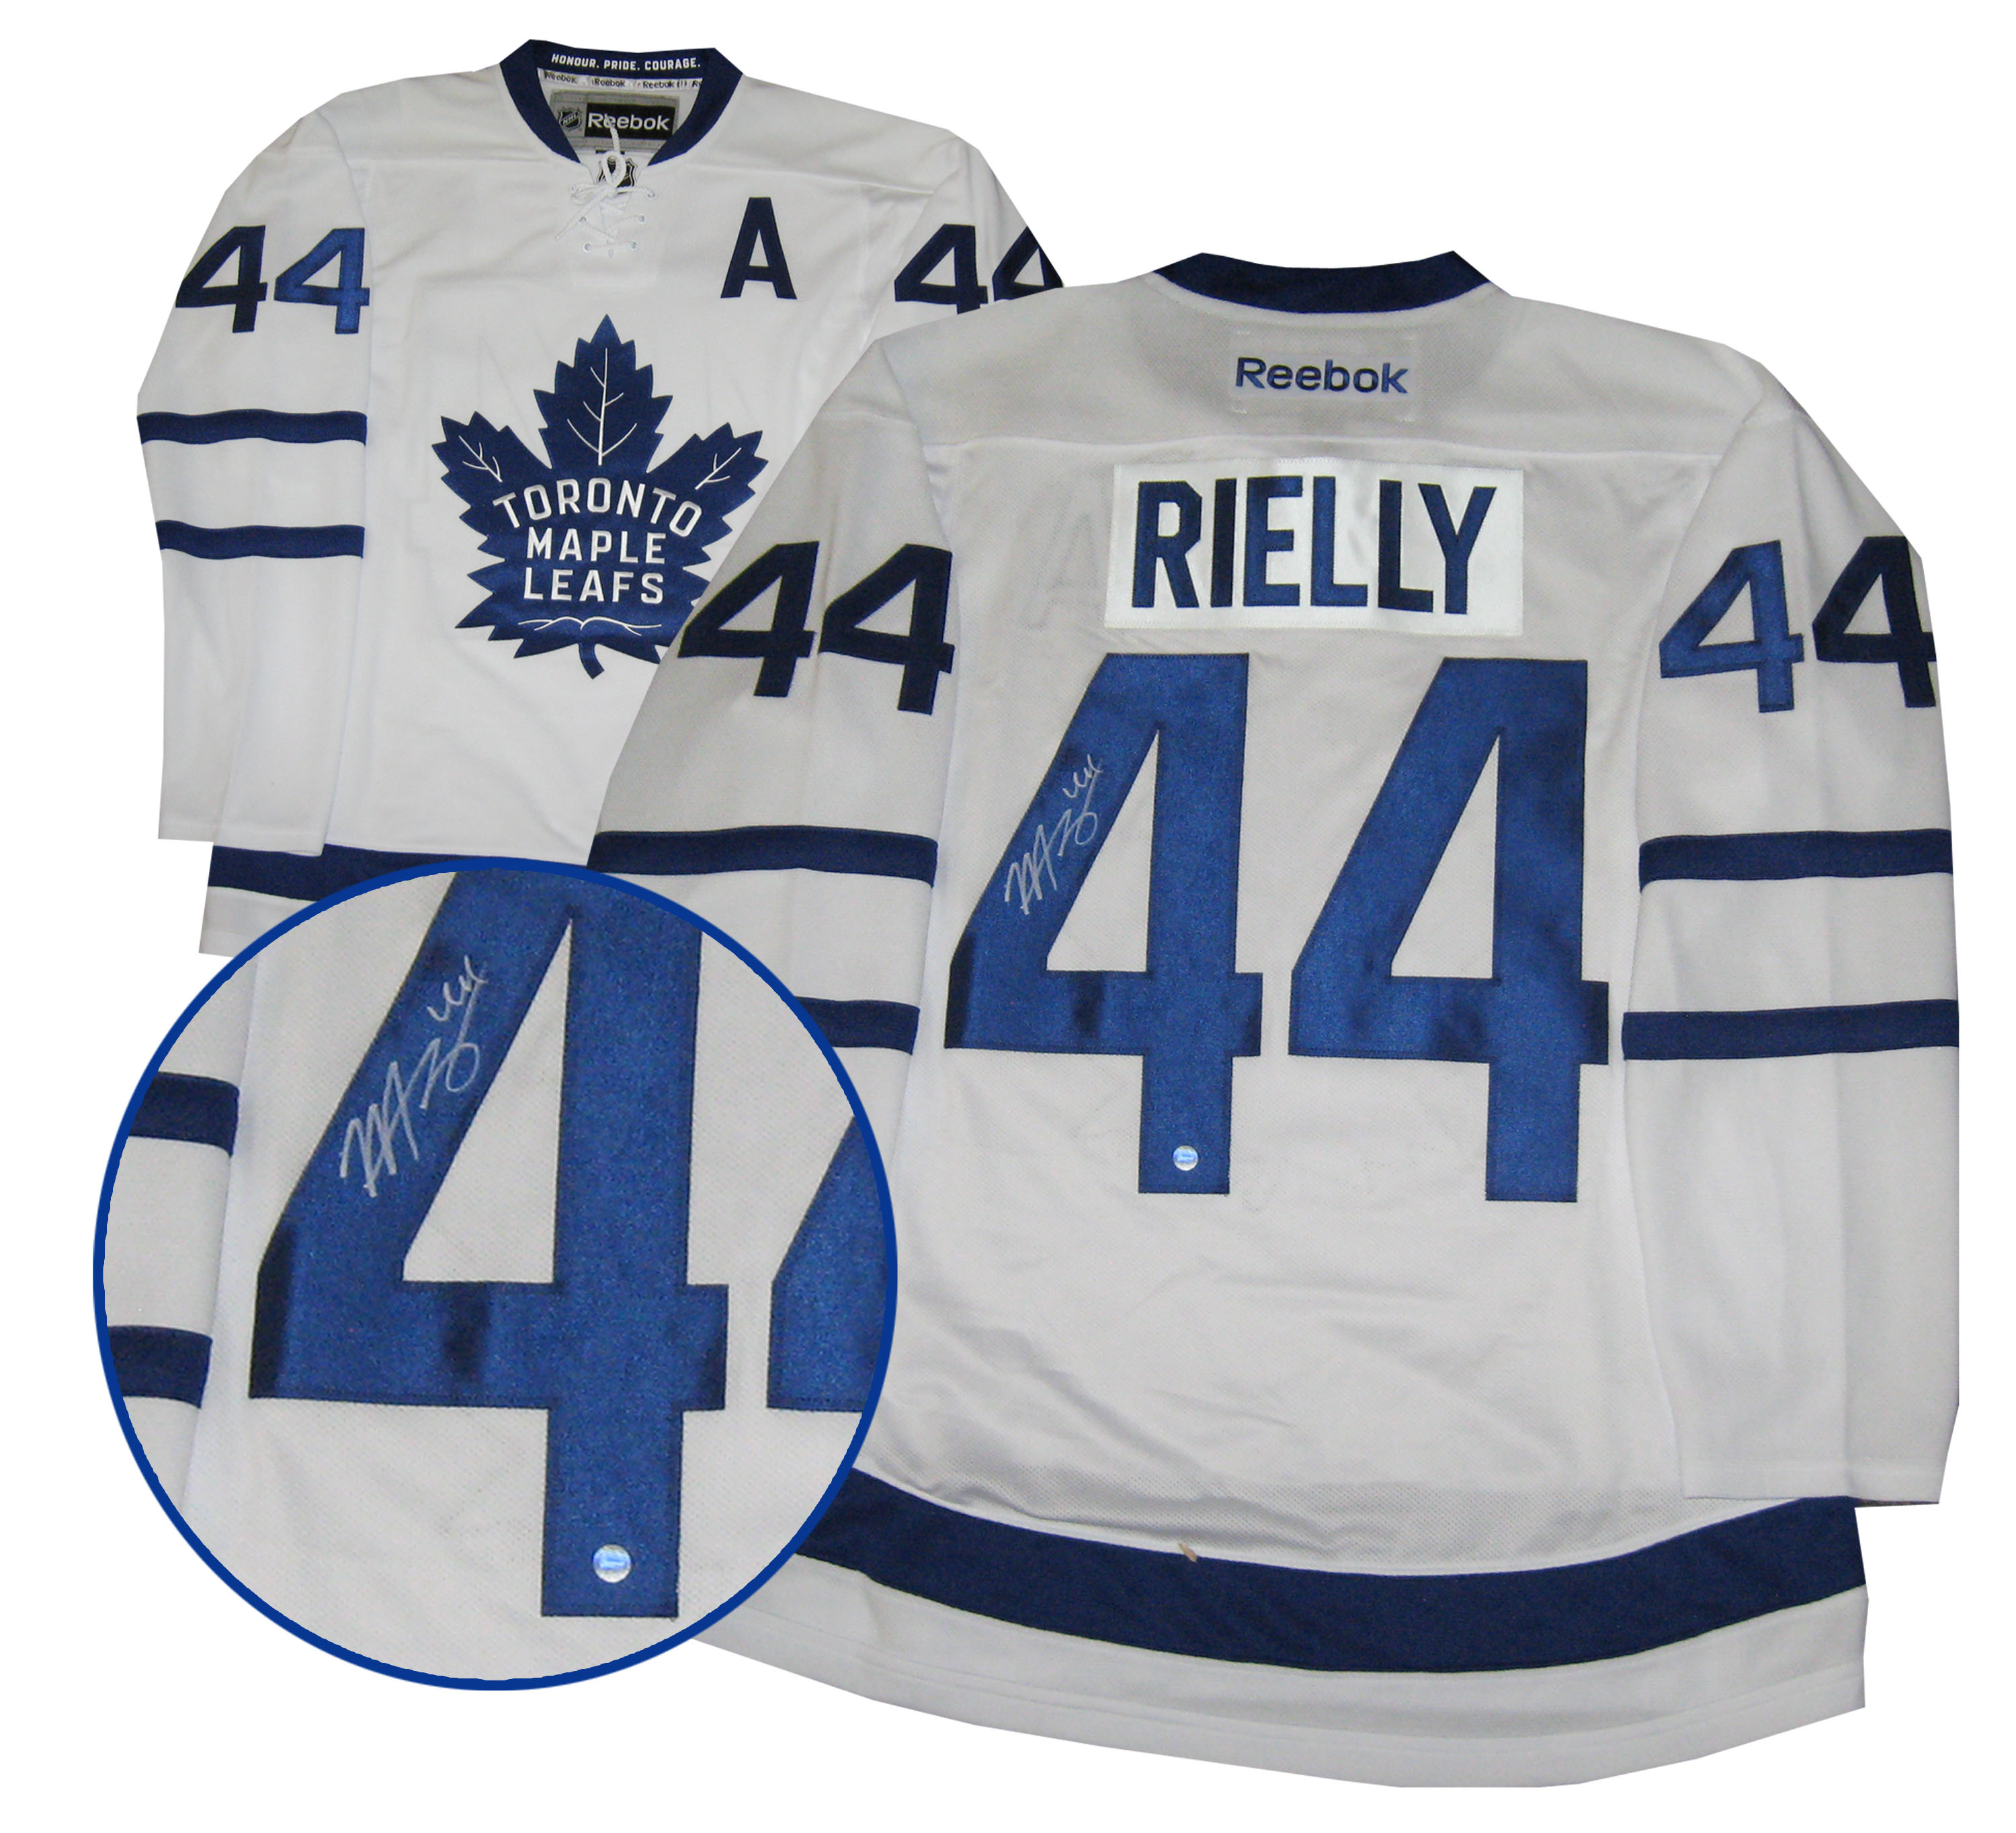 huge selection of 9f729 5834b Lot Detail - Morgan Rielly - Signed Jersey Replica Leafs ...